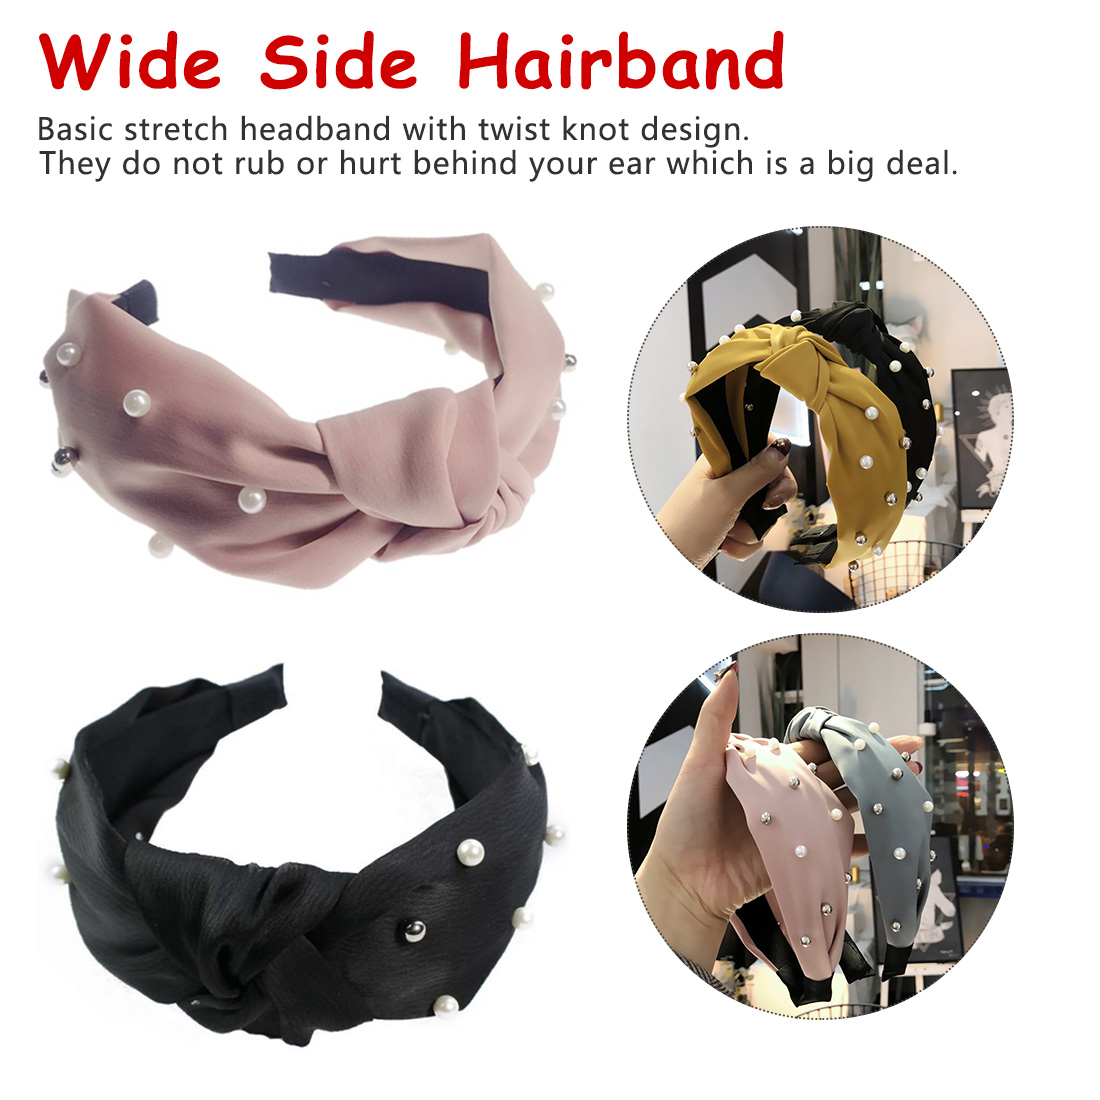 Chic 1pcs fashion Wide Side Hairband Top Knot Turban Pearl Girls new style Elastic Cross Hair Accessories Lovely Fresh Women